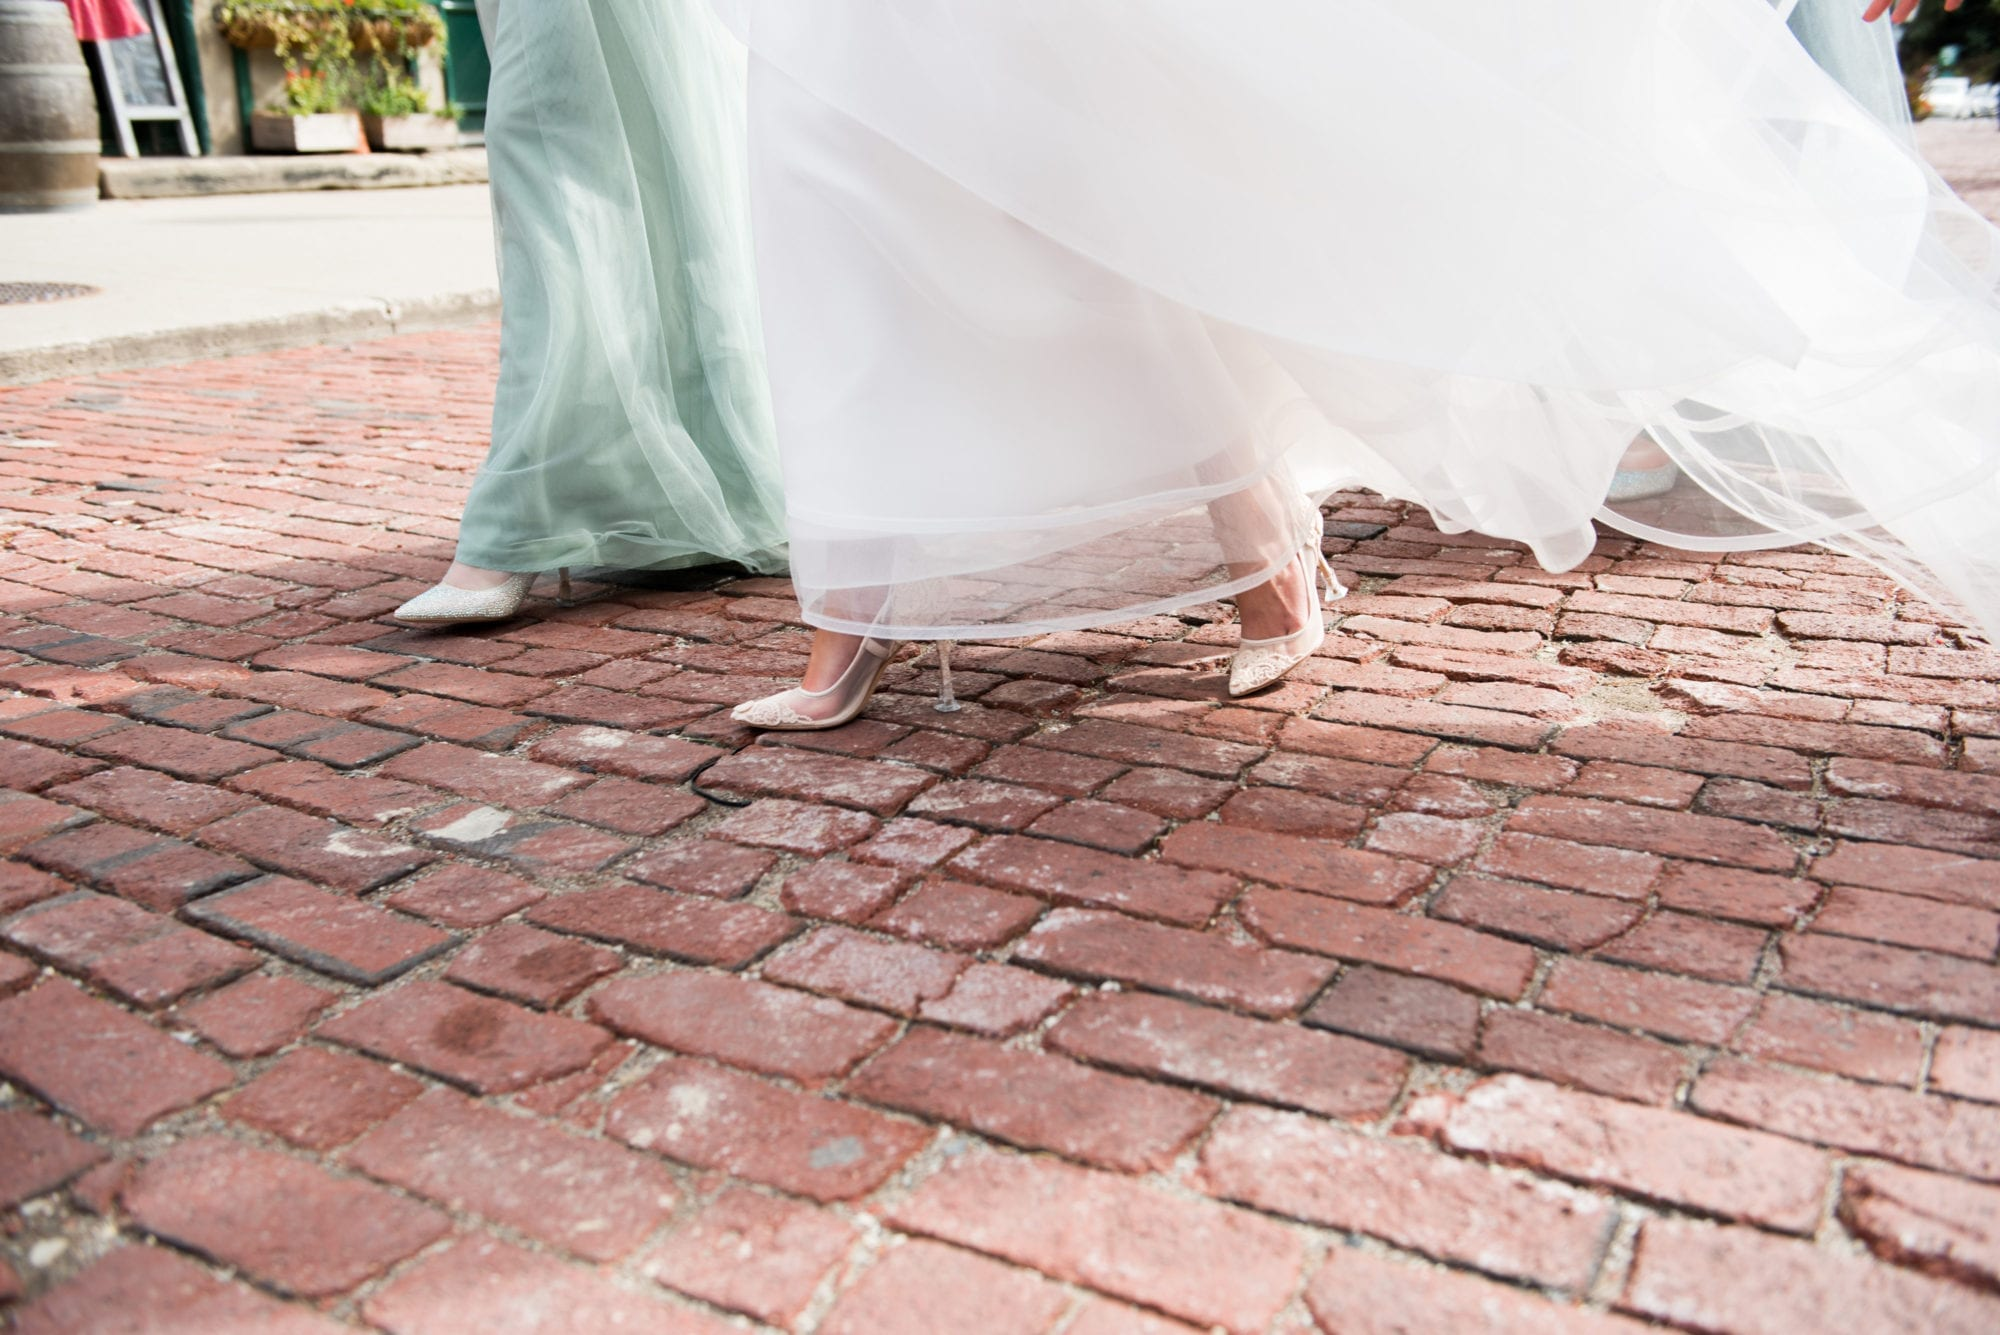 Bride Walk Cobblestone Distillery District Toronto Wedding Zsuzsi Pal Photography